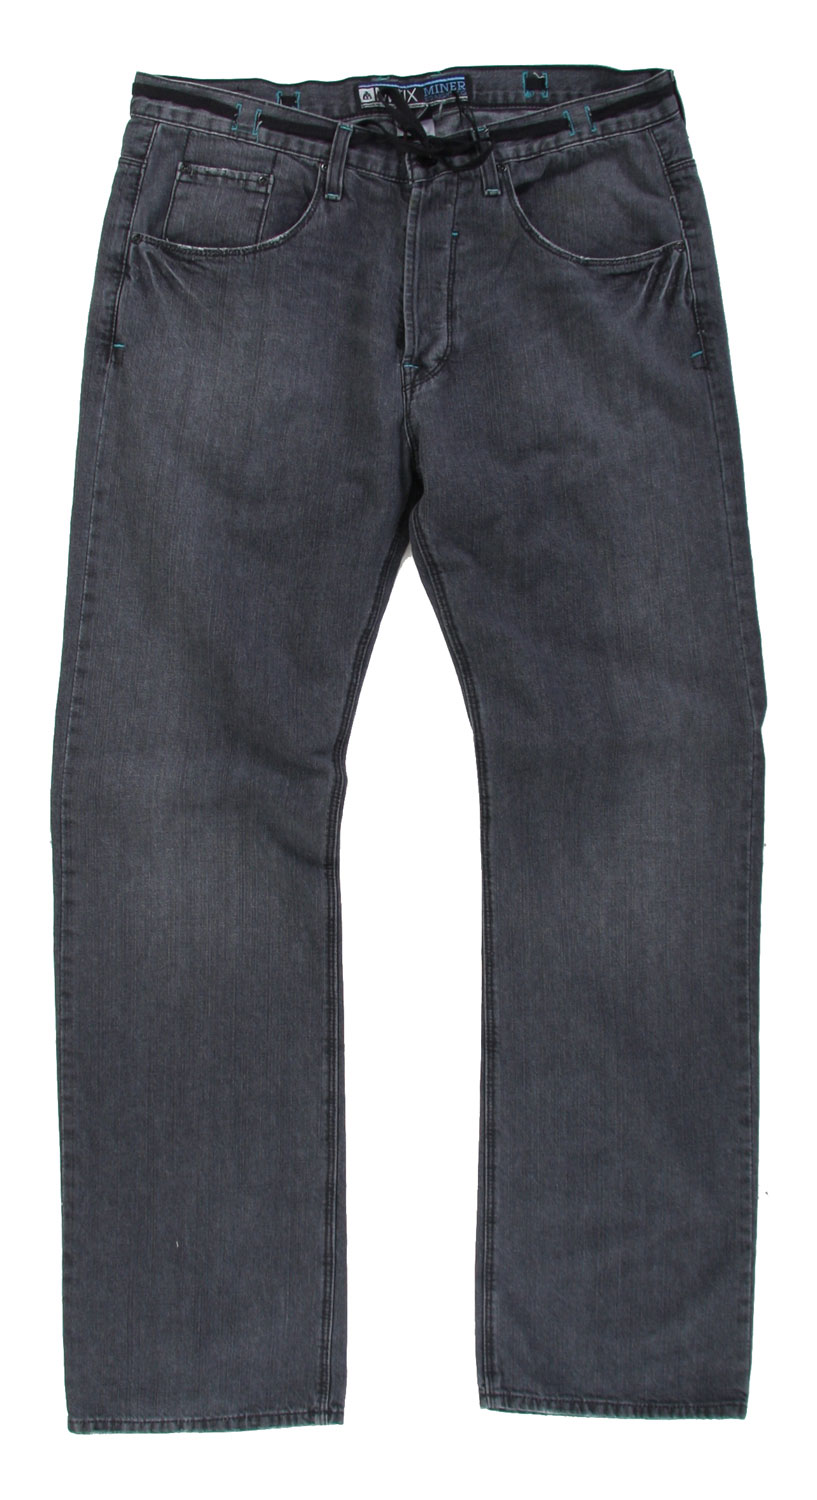 "The Matix Miner Jeans features a classic five pocket design. These jeans are straight leg, flattering to any body shape. Fits so perfectly, you will feel ultra comfortable all day long. Add style to any outfit with these classic denim jeans, a look that will surely last forever. So, be sure to add the Matix Miner Jeans to your wardrobe this season.Key Features of The Matix Miner Jeans: Straight Leg Five Pocket Denim Pant Button Fly Comfortable Through the Hip and Thigh Standard Rise Straight Leg Opening 17.5"" 32"" European Button Fly - $36.95"